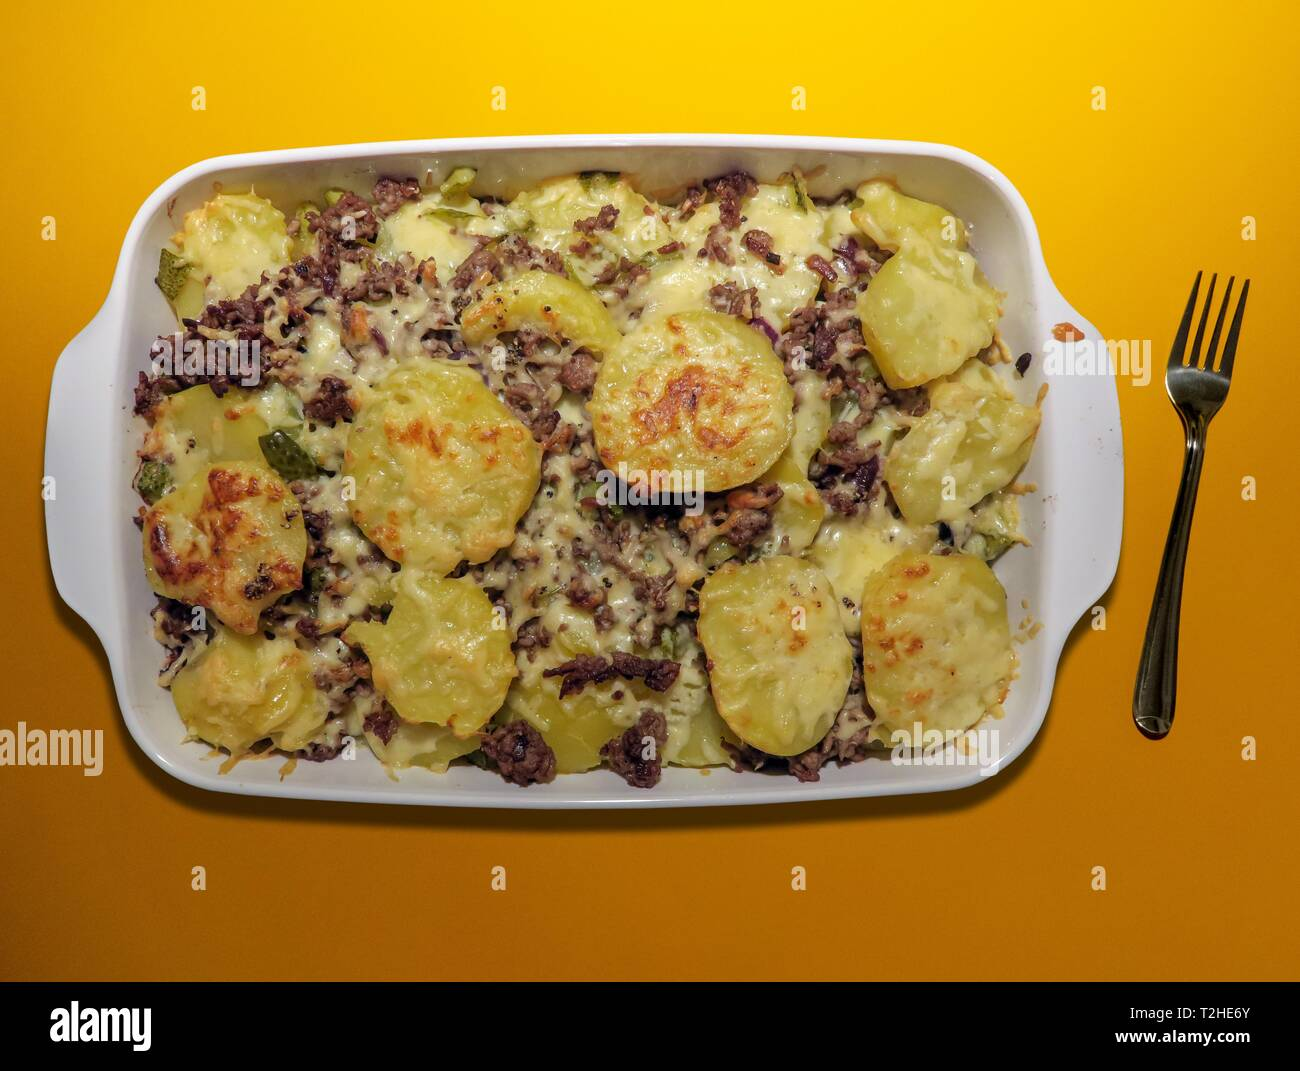 Casserole, potato casserole with minced meat, home cooking, orange background, fork, Germany - Stock Image